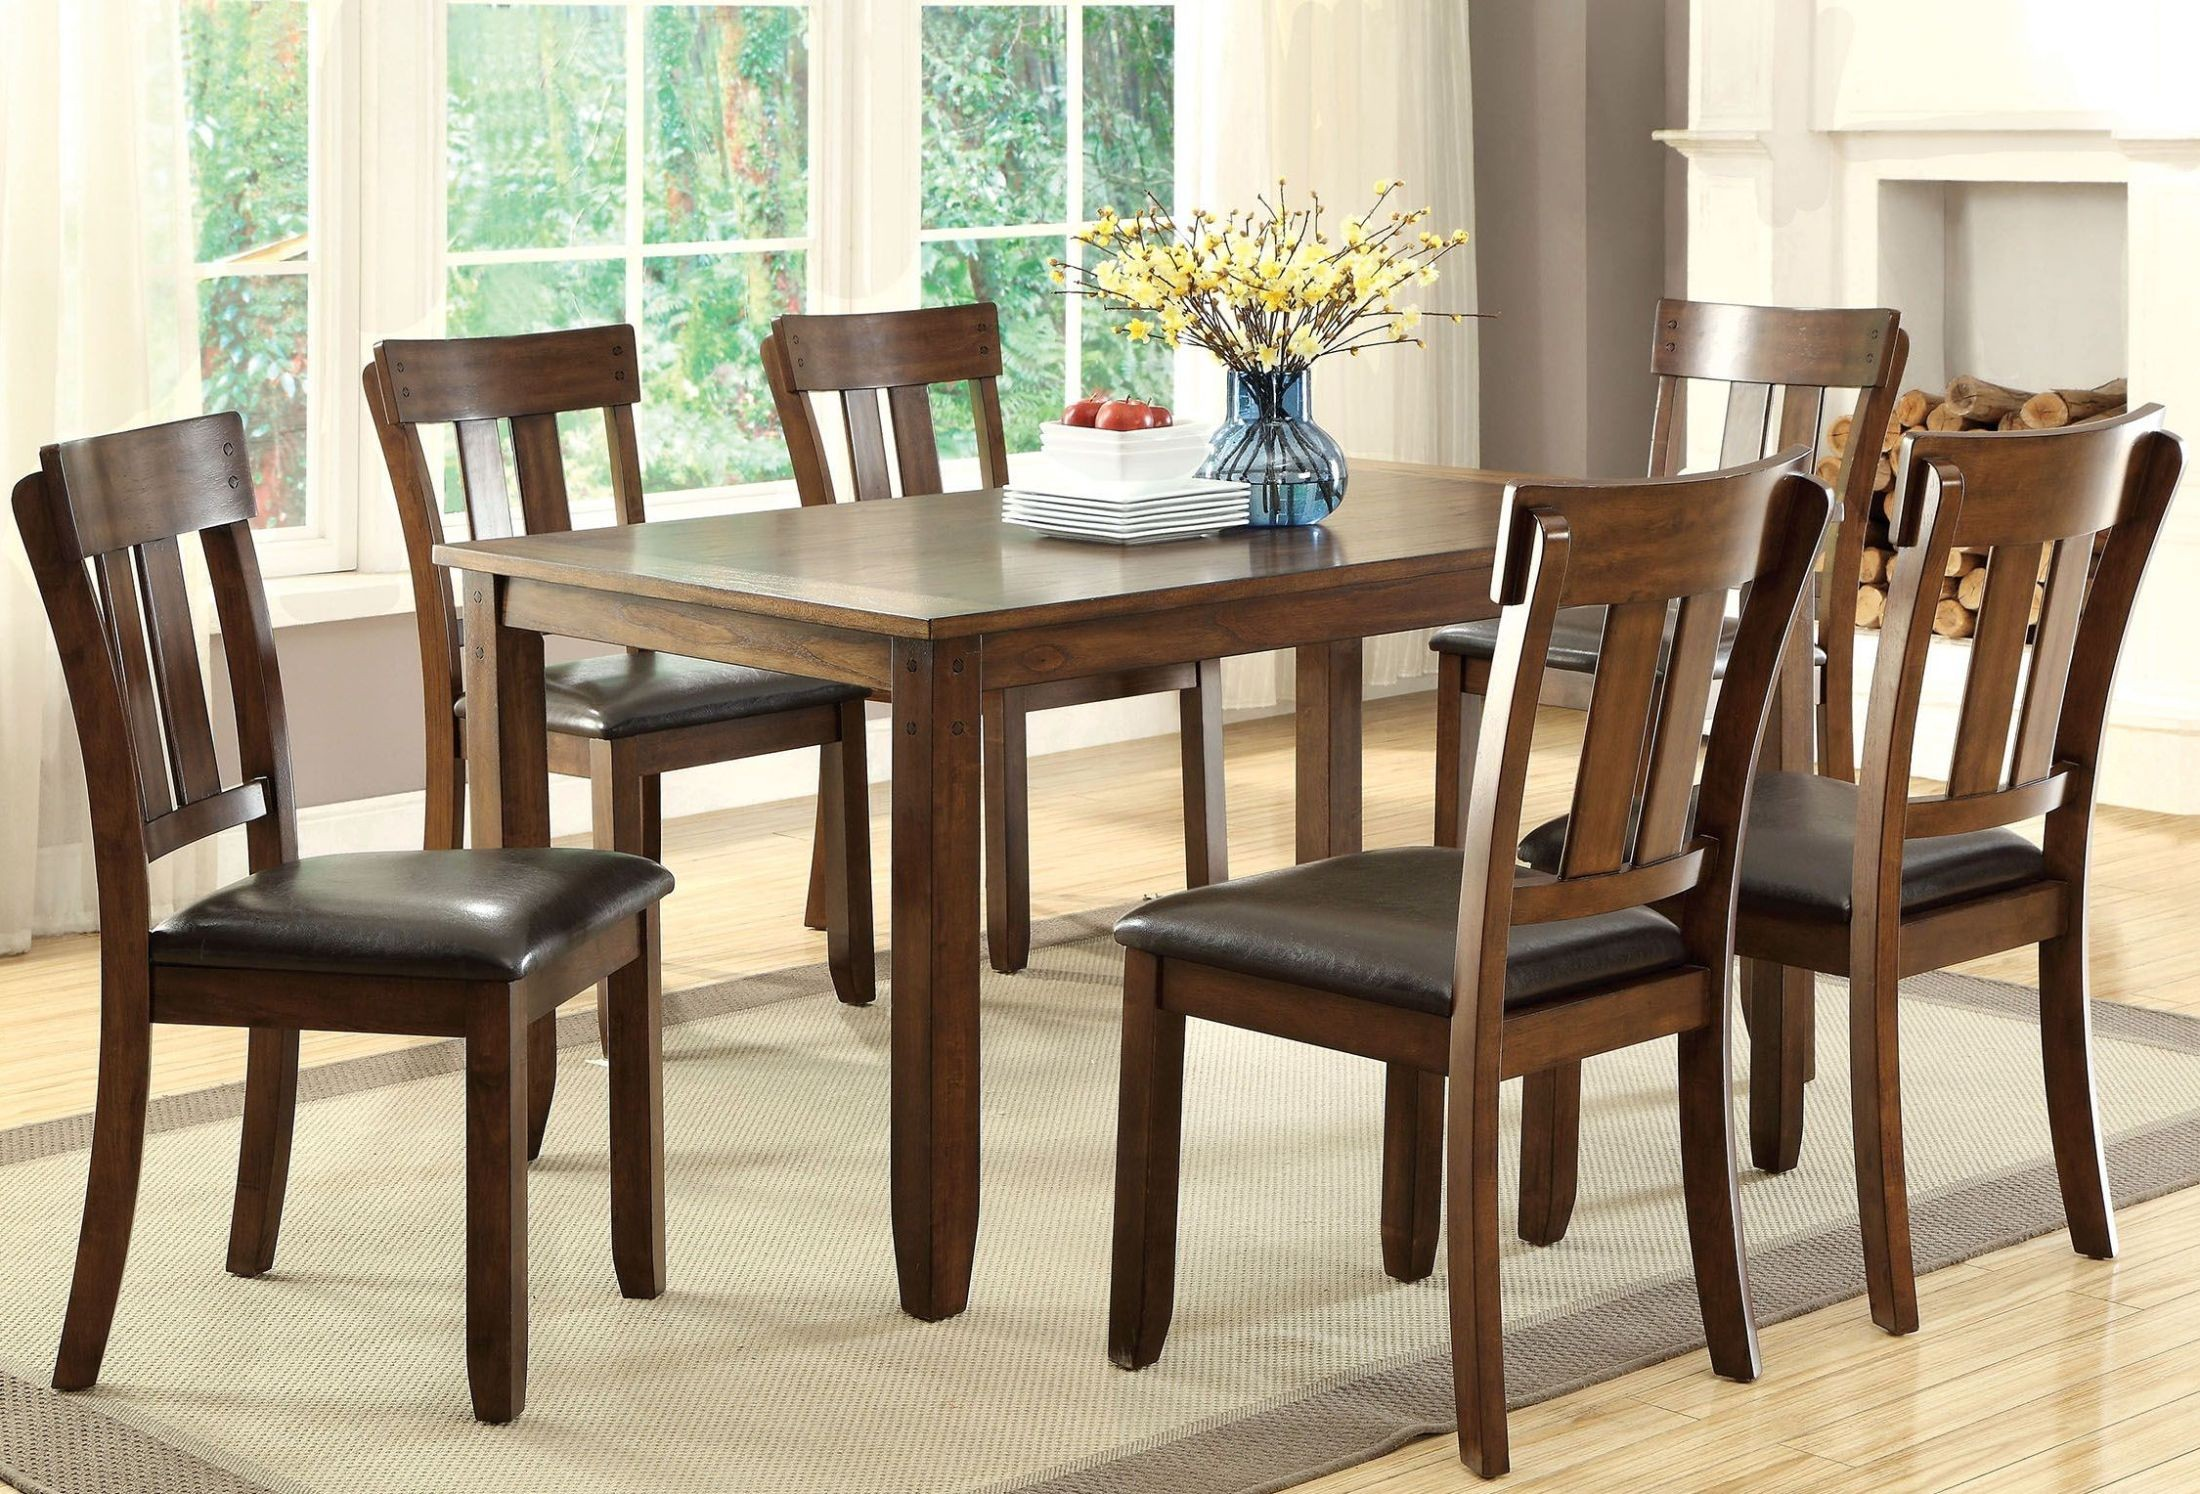 Brockton I Rustic Oak Rectangular Dining Room Set CM3355T Furniture Of America